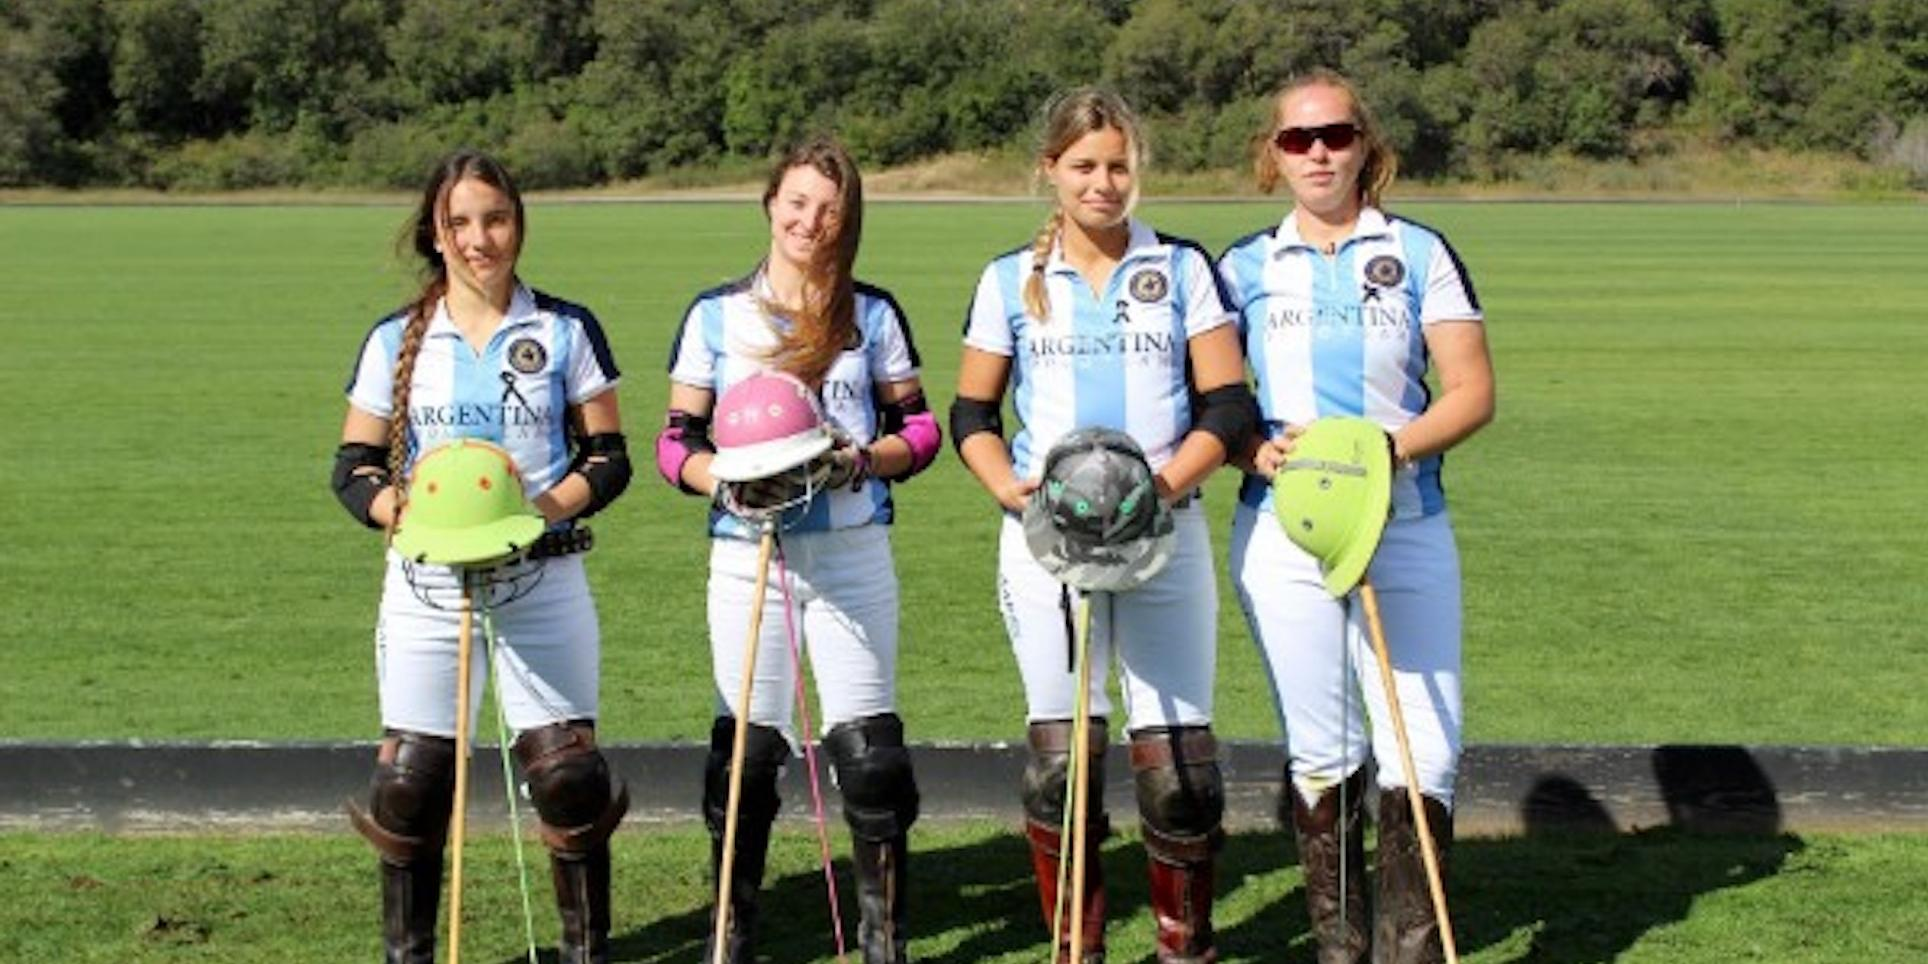 fip_womens_invitational-denver_polo_club-horsesdaily-2018.jpg